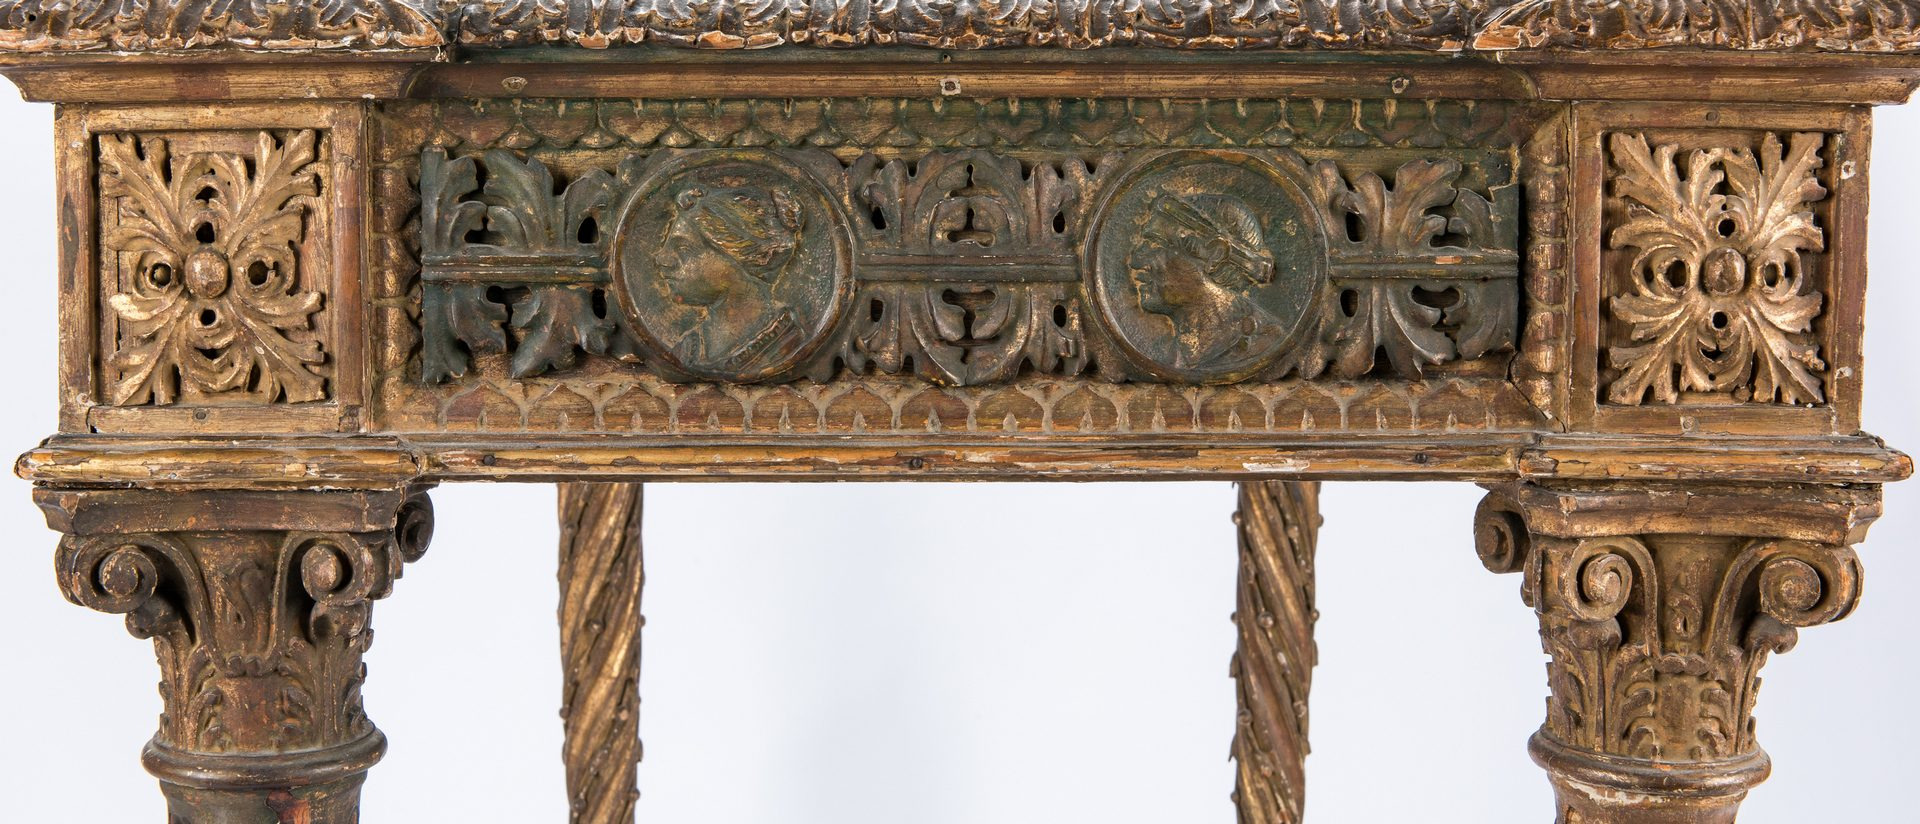 Lot 276: Italian Baroque style Carved Writing or Pier Table